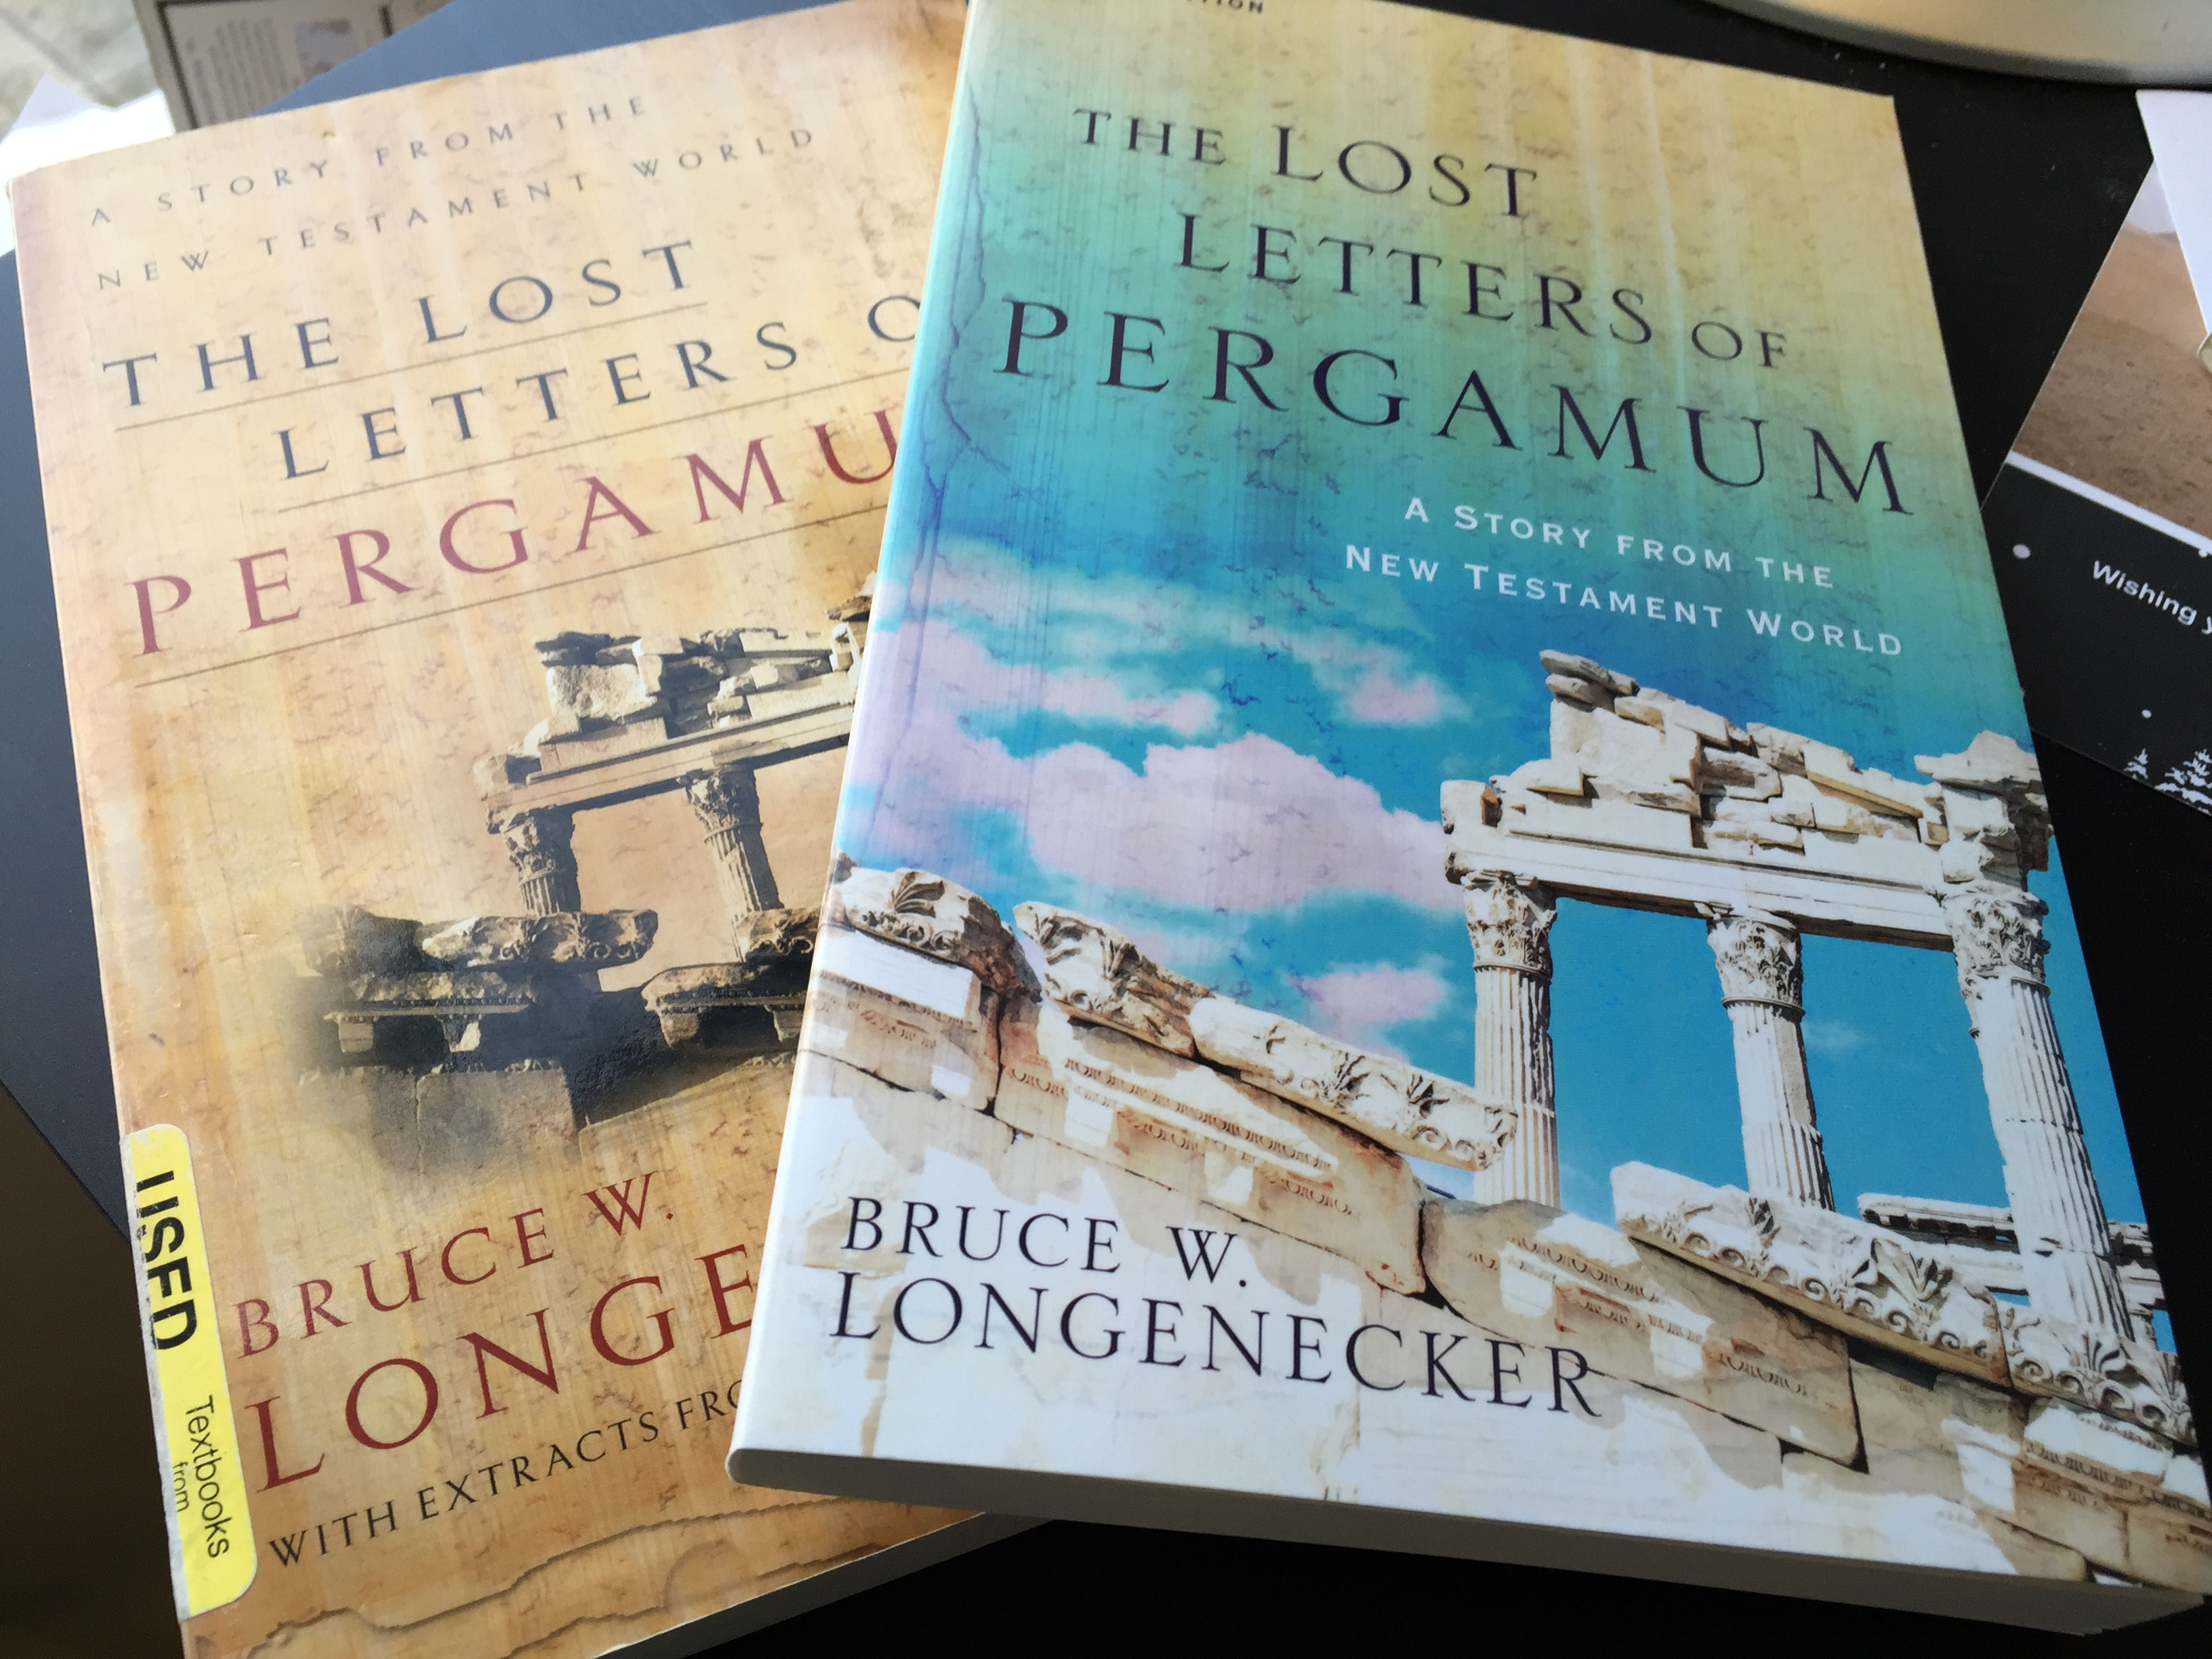 the lost letters of pergamum 2nd edition gupta crux sola